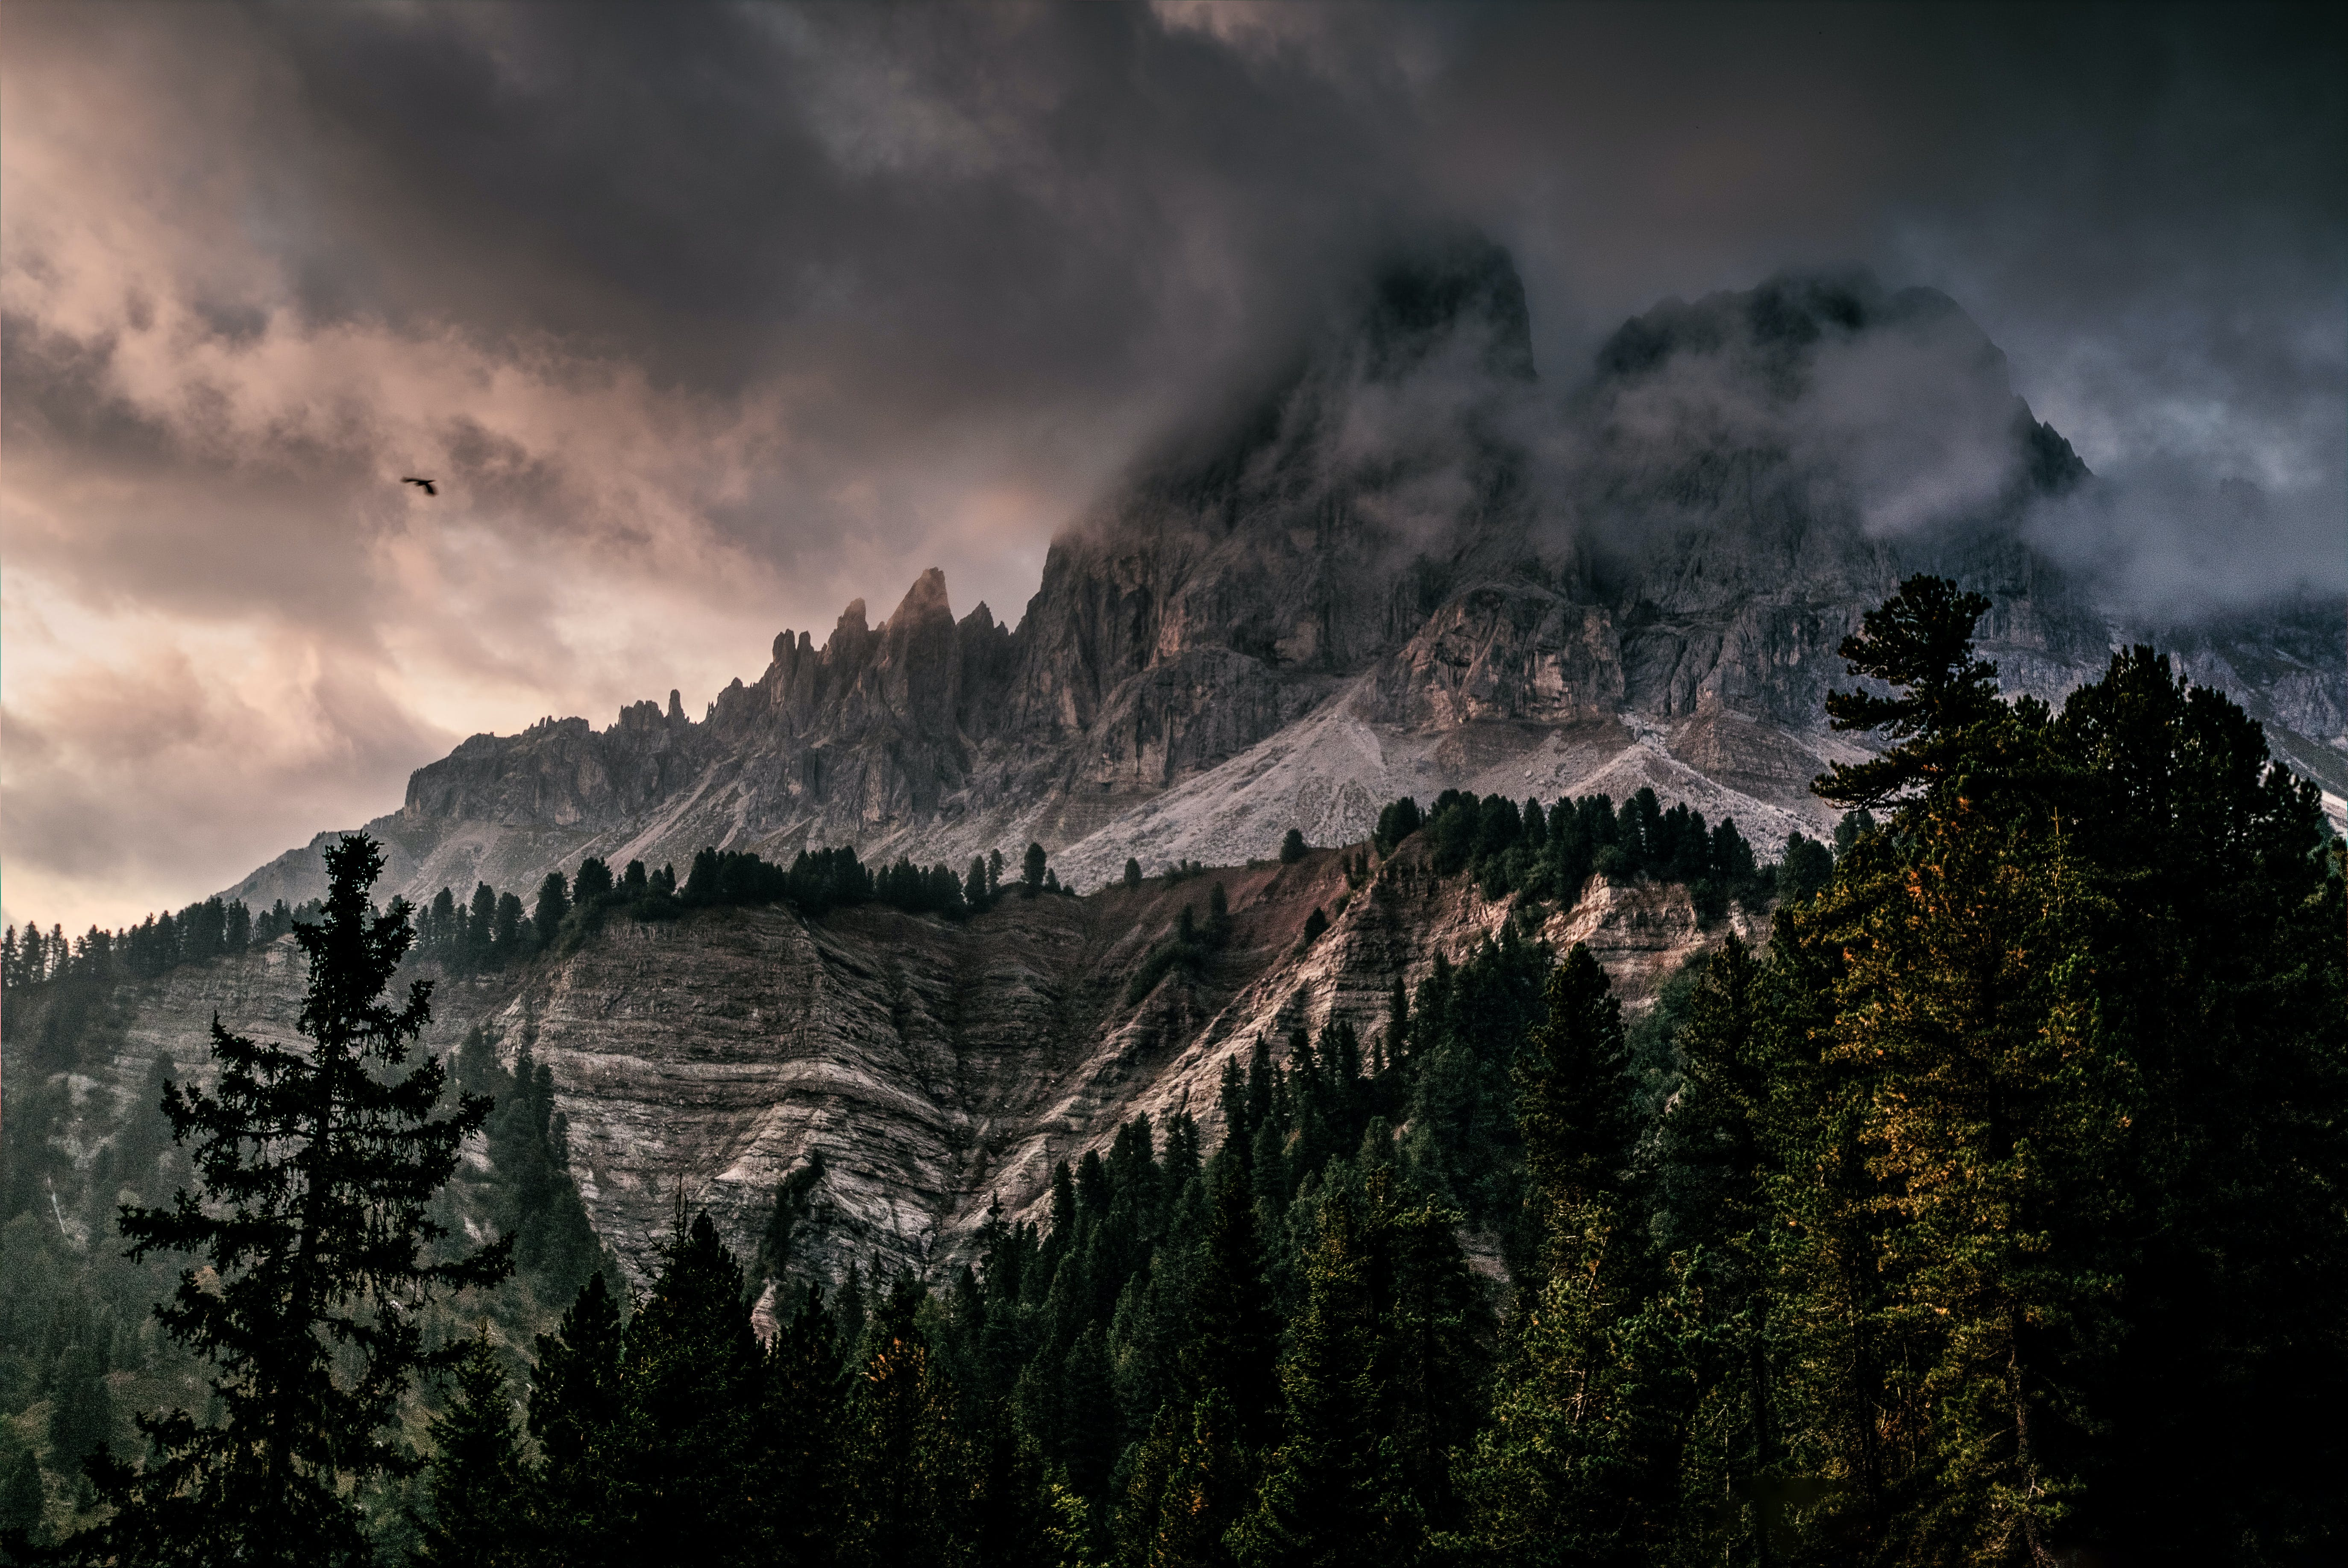 Photo of Mountain With Ice Covered With Black and Gray Cloud